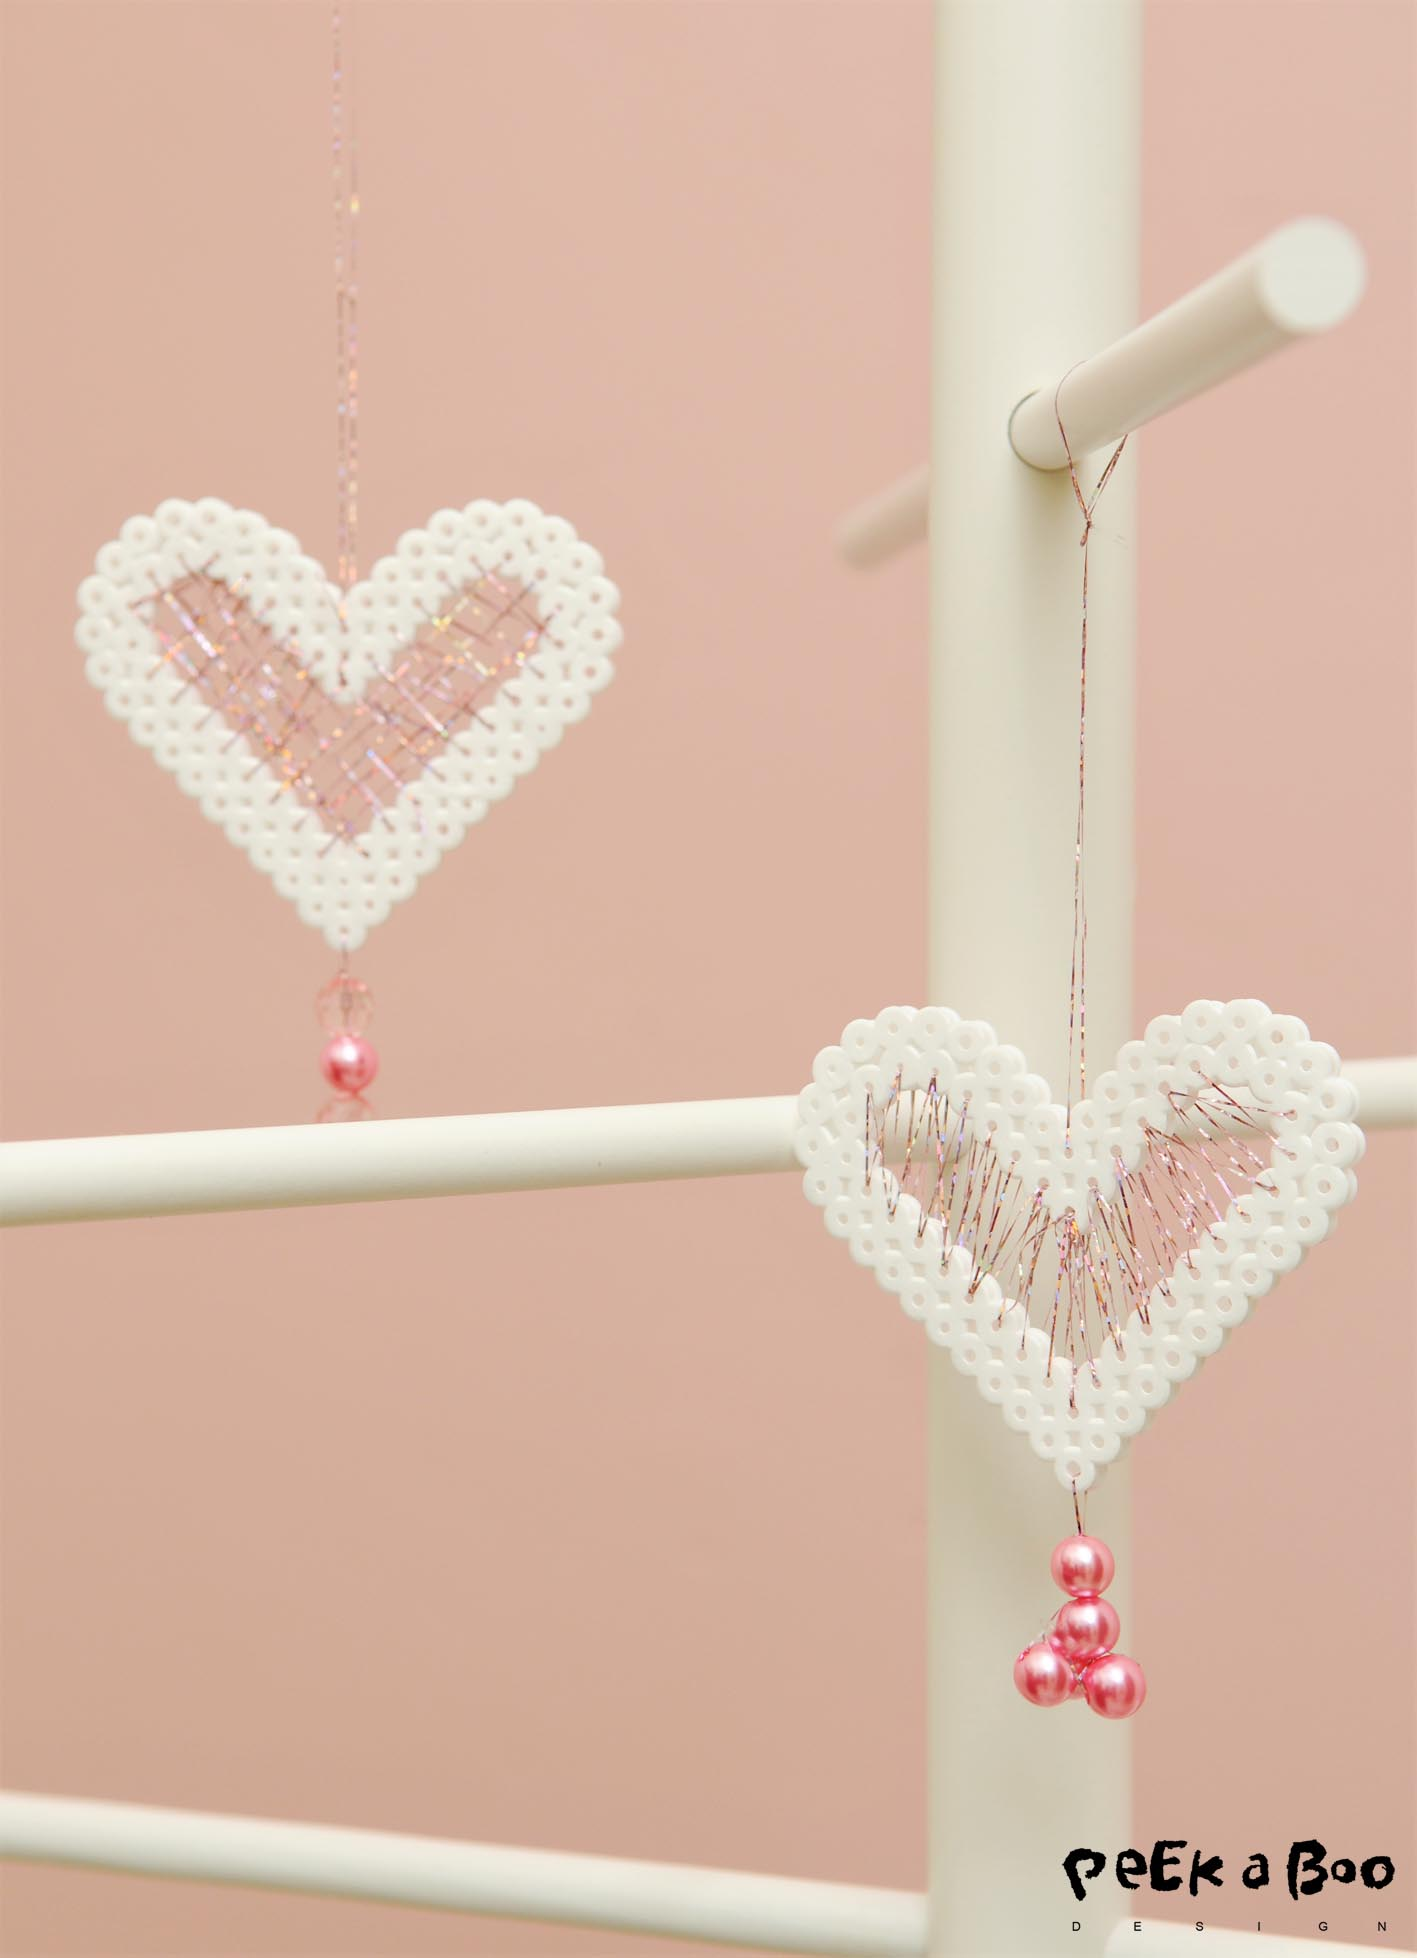 The two hearts looks quiet different because of the different stitching.